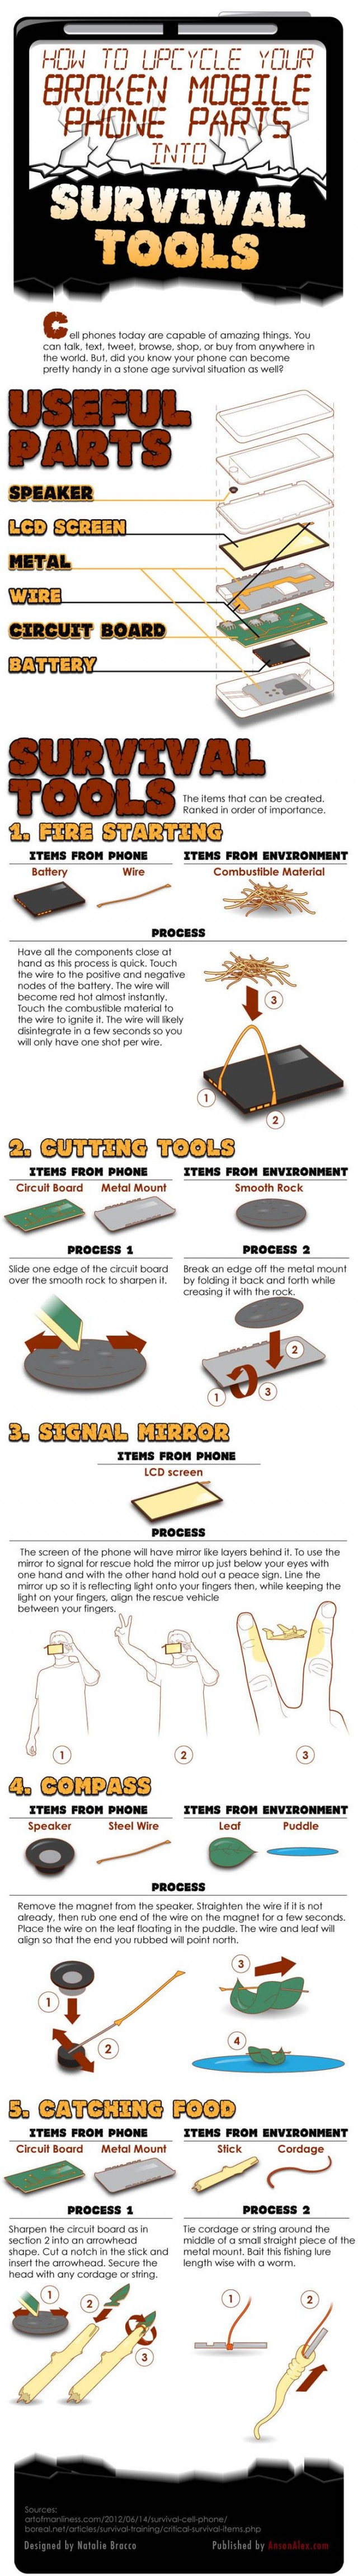 How To Use Your Cell Phone as a Survival Tool [Infographic]